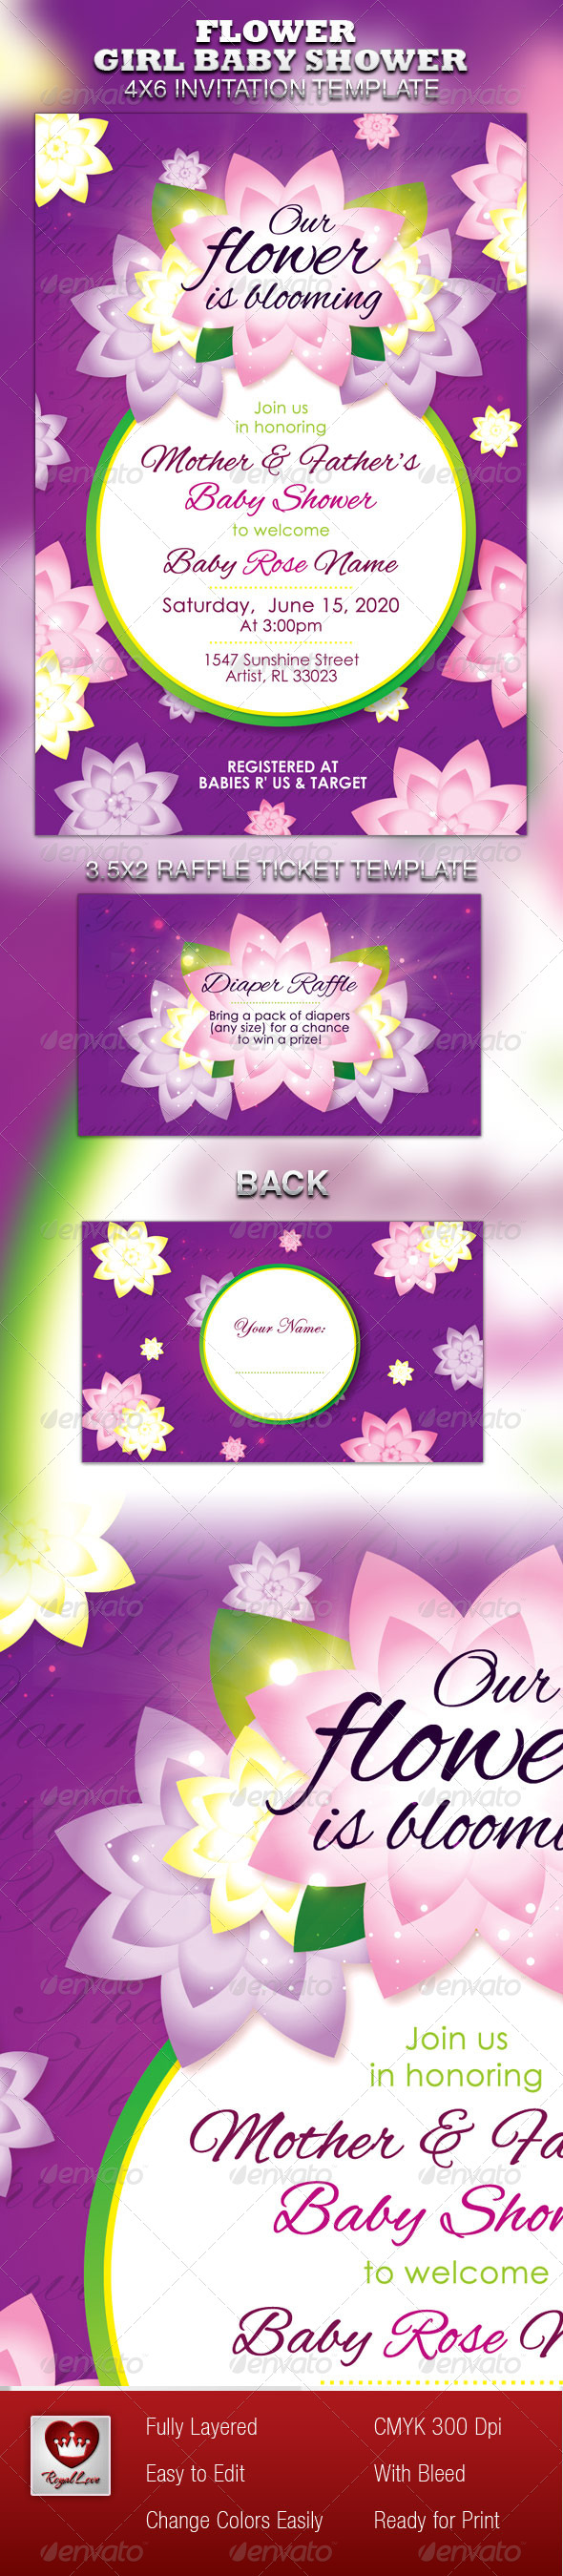 GraphicRiver Flower Girl Baby Shower Invitation & Raffle Ticket 4867528